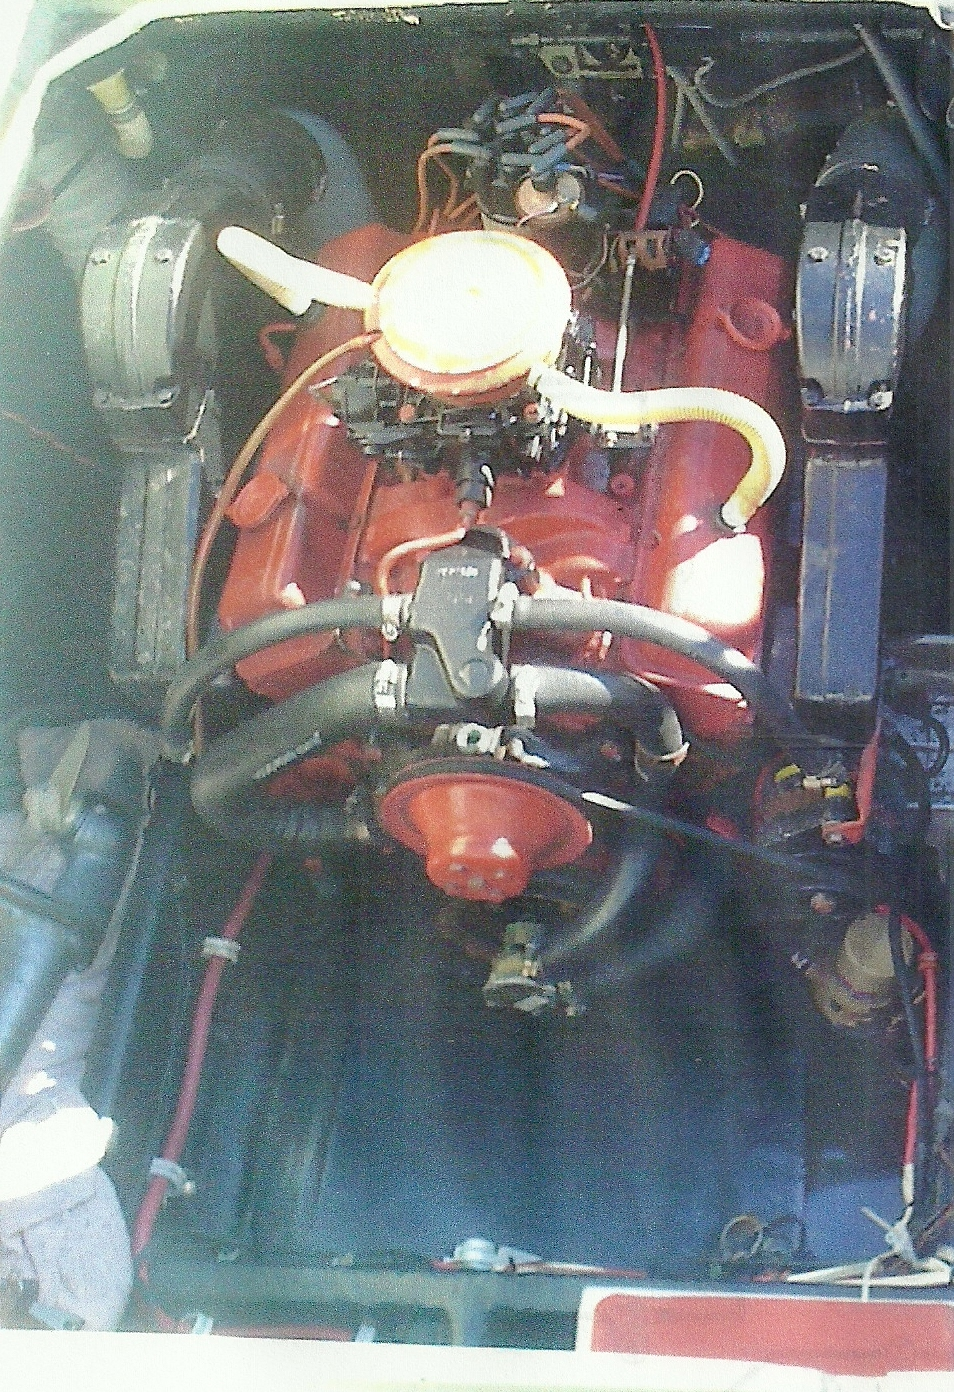 Mhc Rfjkqy O I Ktpo Wg in addition Hqdefault additionally Mofqp Amixu H Vu Szd Q moreover  likewise Mm D Bzsl Sjozgy Oubkwg. on 5 7 mercruiser chevy 350 small block boat engines